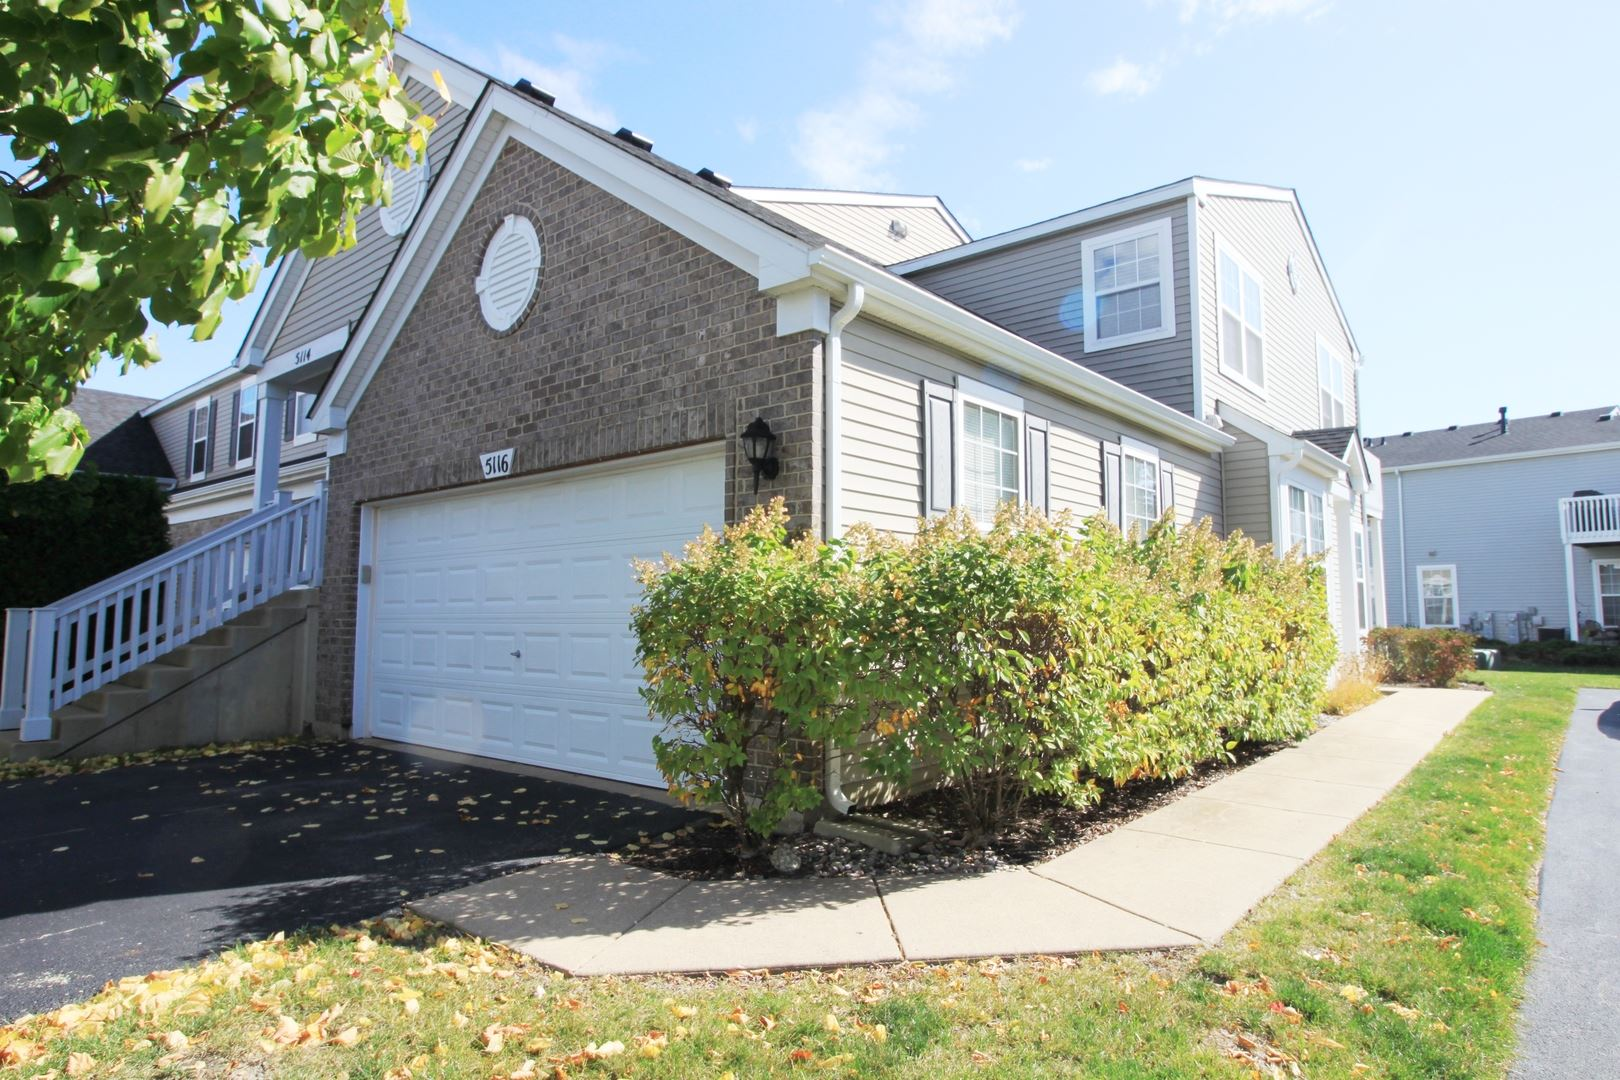 Photo of 5116 New Haven Court #5116, Plainfield, IL 60586 (MLS # 10906008)